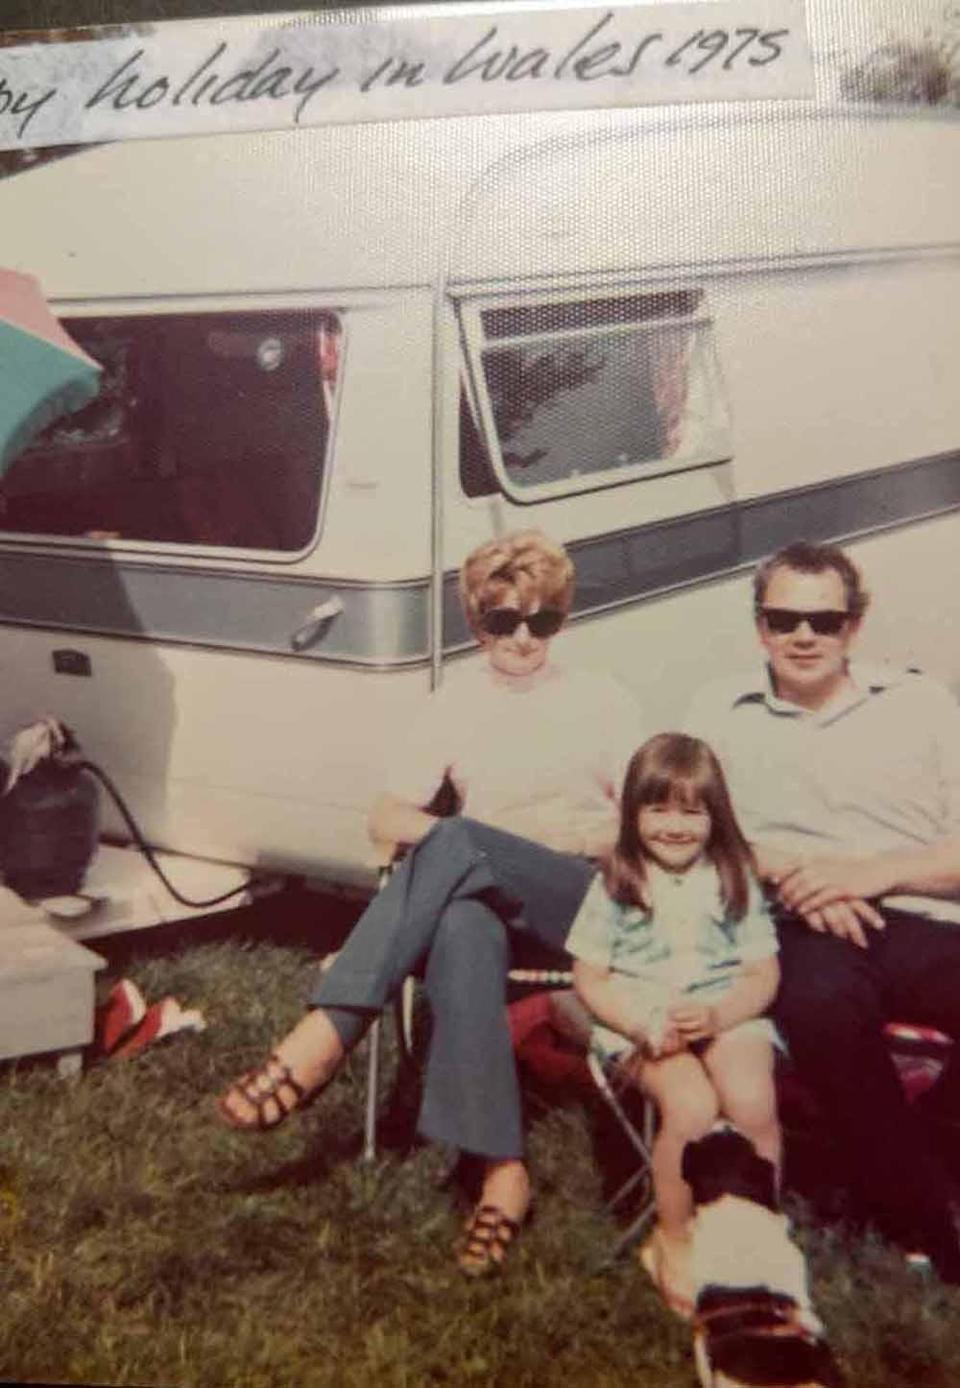 Amanda as a child on a family holiday. PA REAL LIFE COLLECT